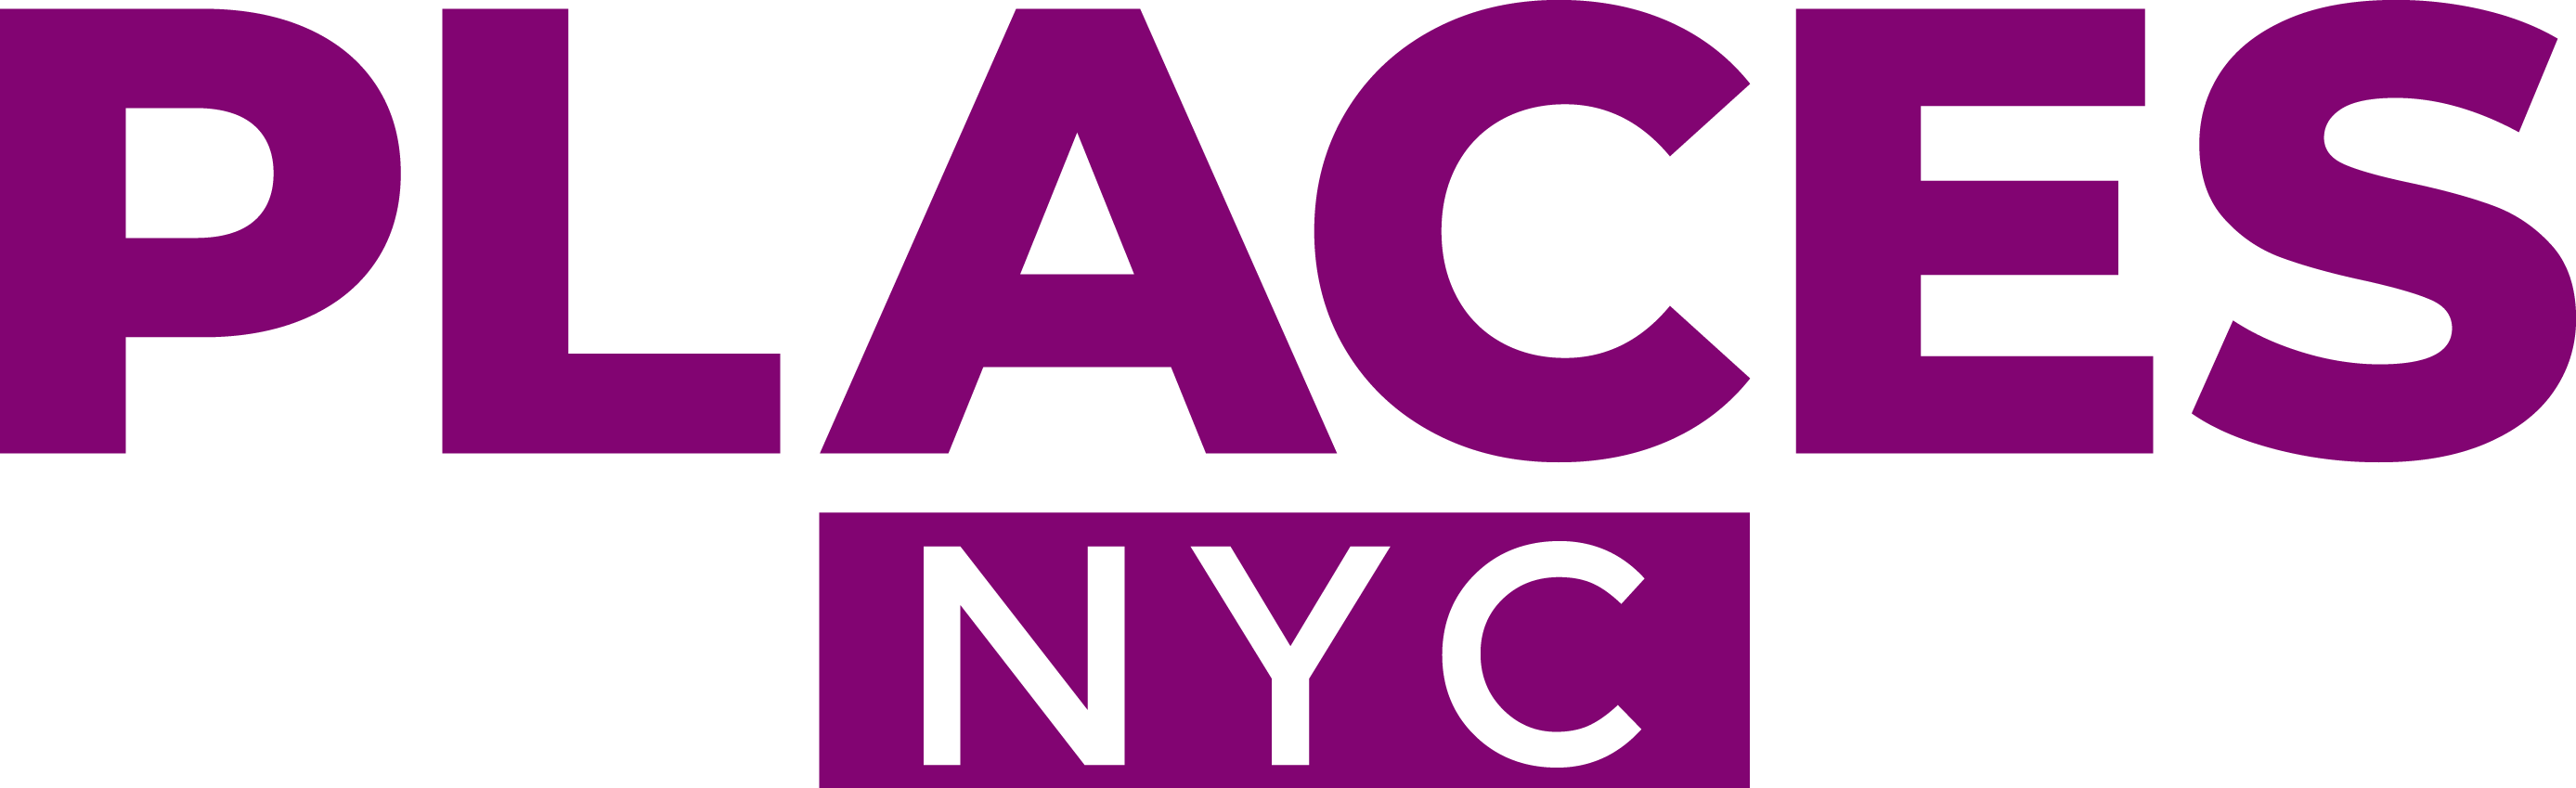 Places NYC